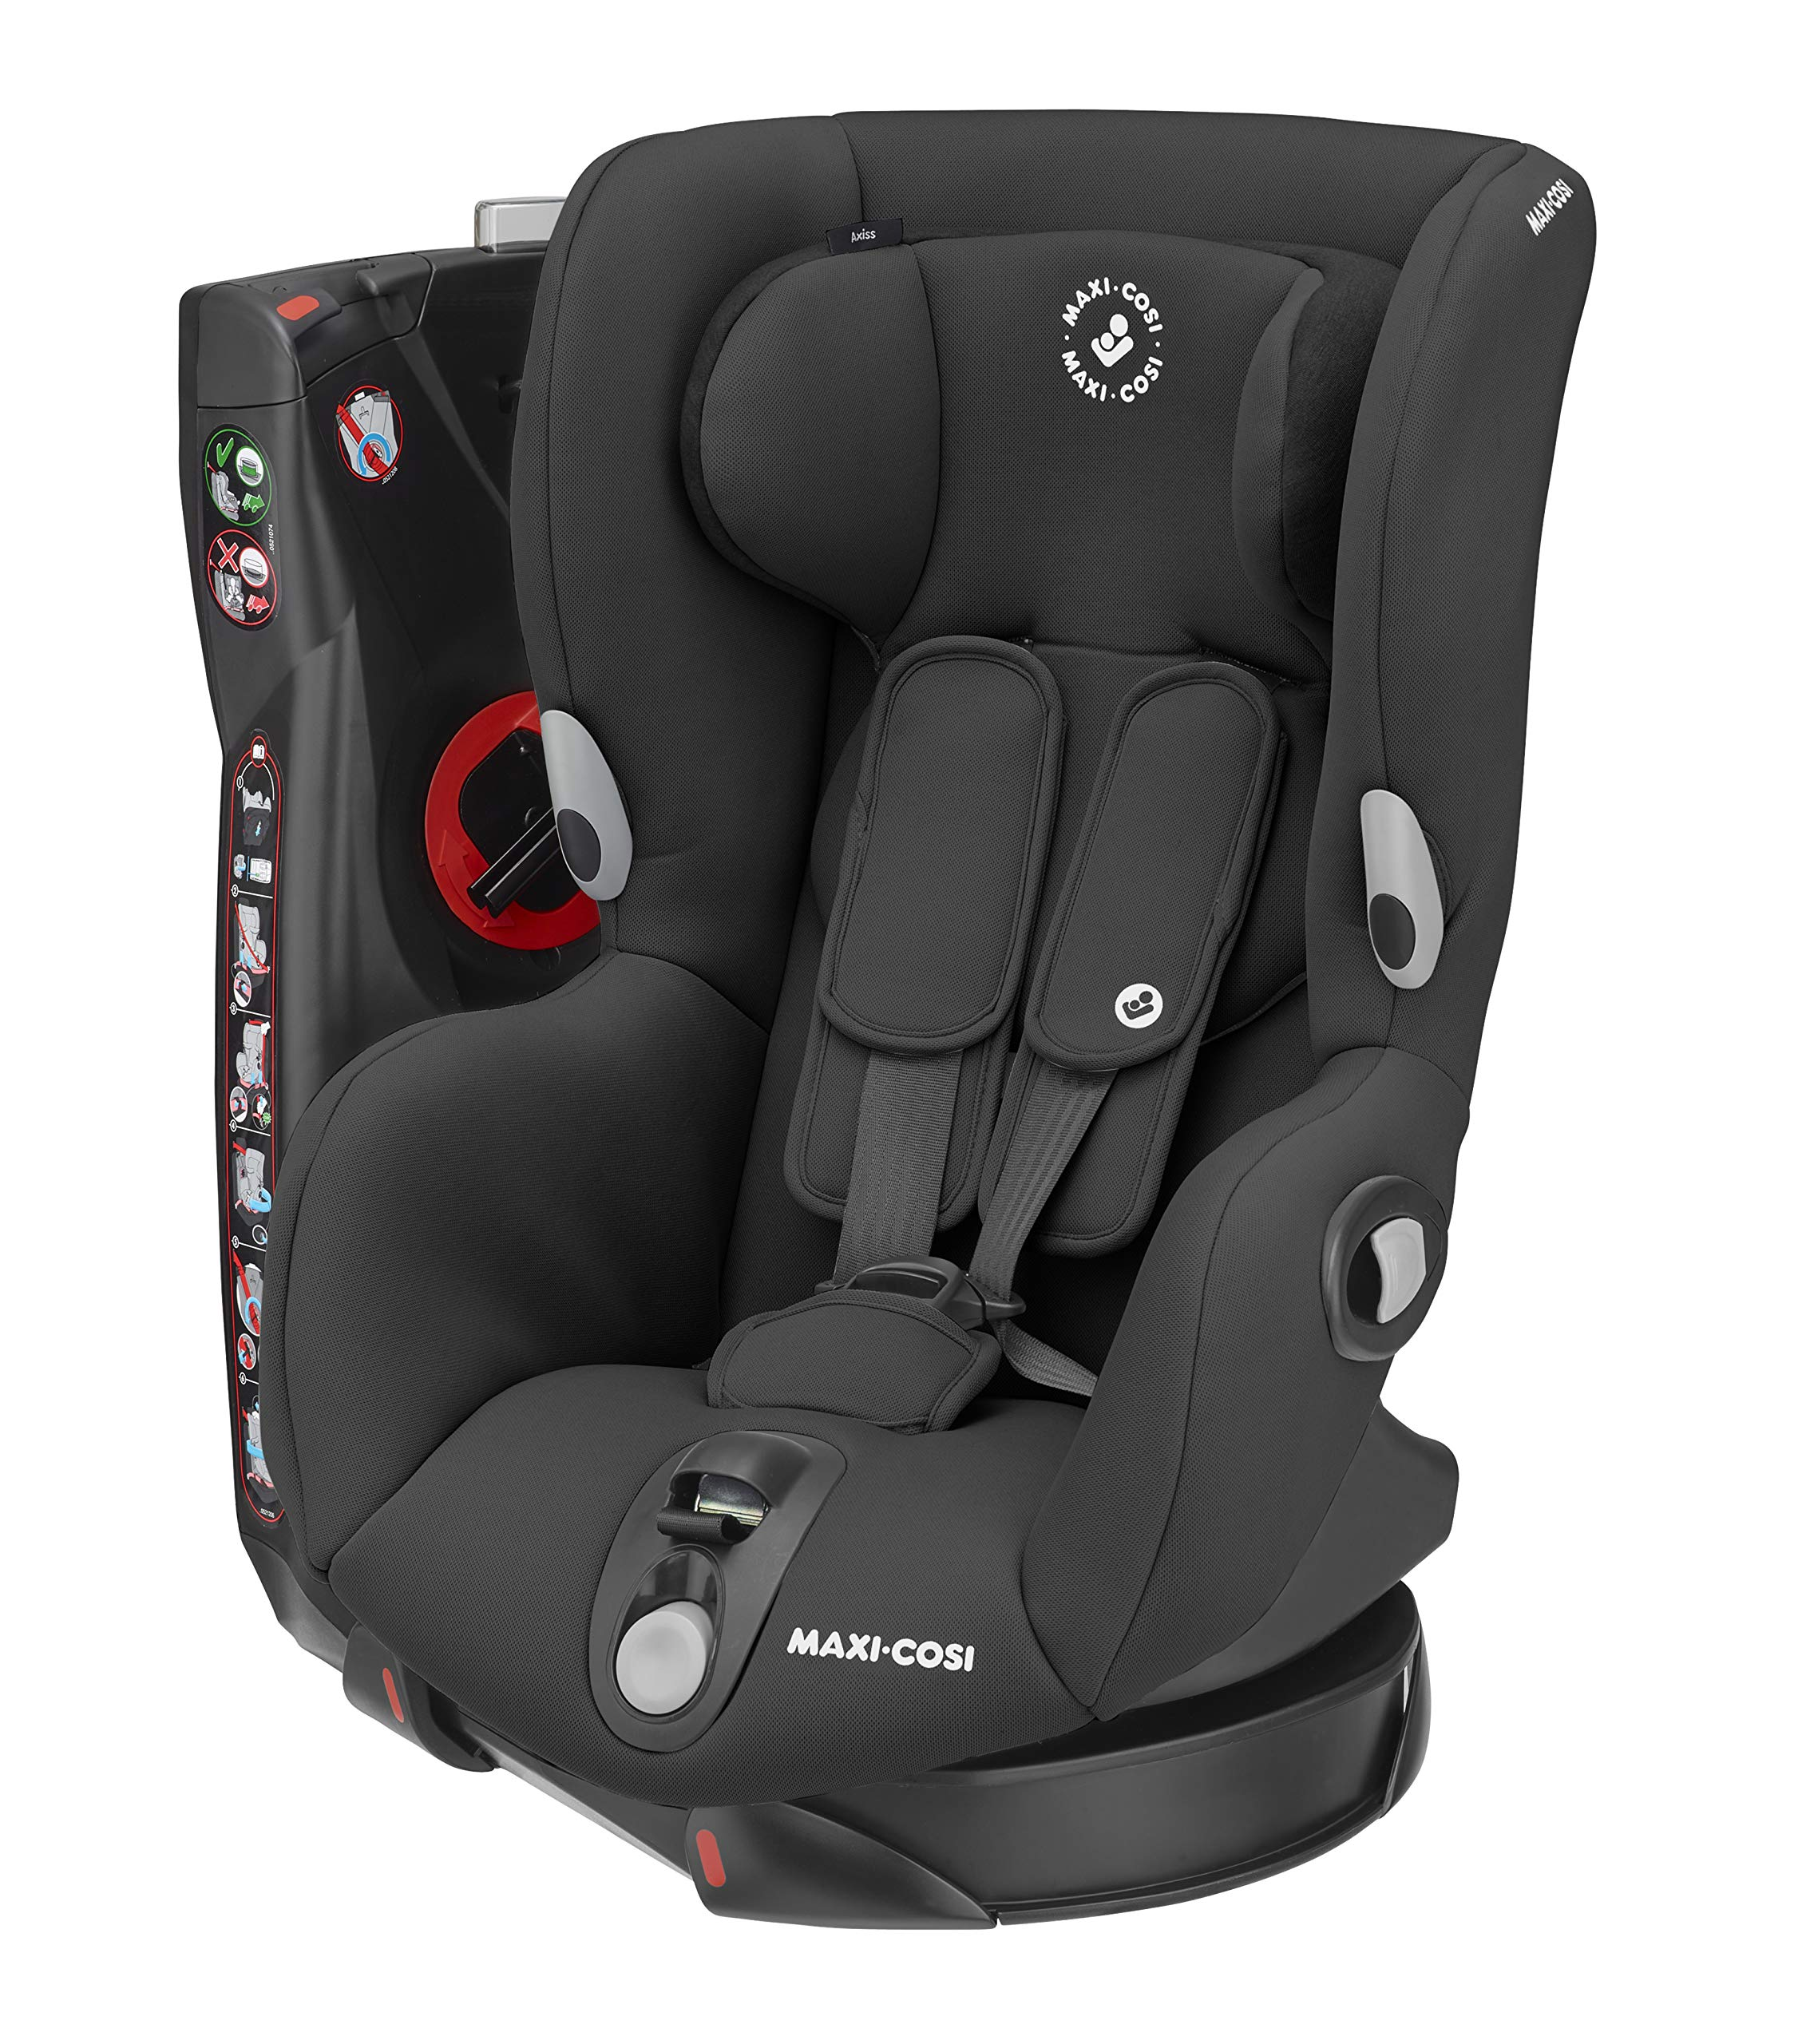 Maxi-Cosi Axiss Swivelling Toddler Car Seat, Authentic Black, 11.79 kg Maxi-Cosi Maxi-cosi axiss car seat swivels 90° degrees allows for front-on access to get your toddler in and out of the car more easily 8 comfortable recline positions Install using the car's seat belt and the integrated belt tensioner ensures a solid fit 1